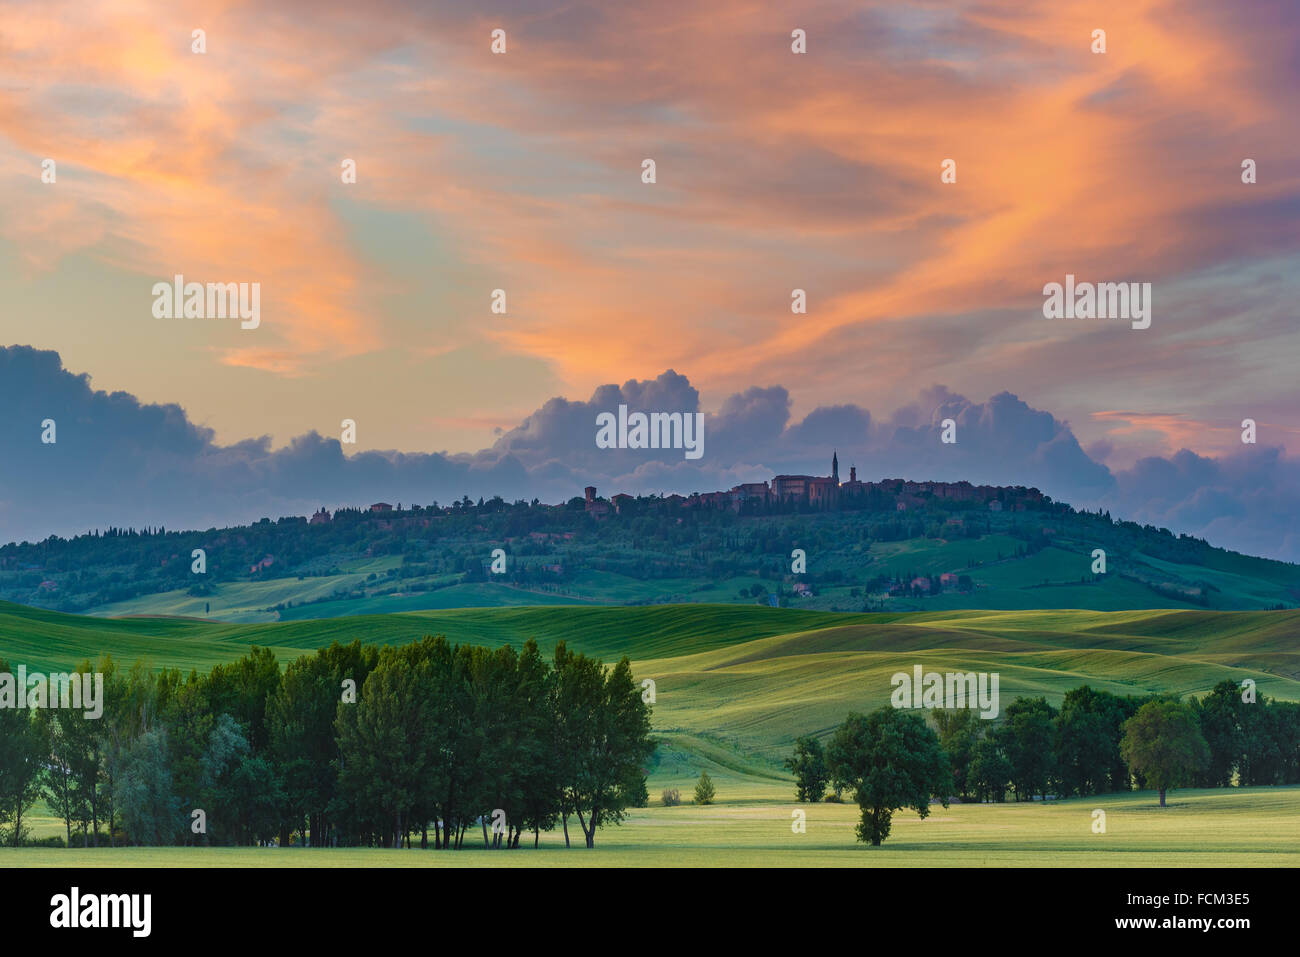 The medieval town of Pienza at colorful sunset Stock Photo